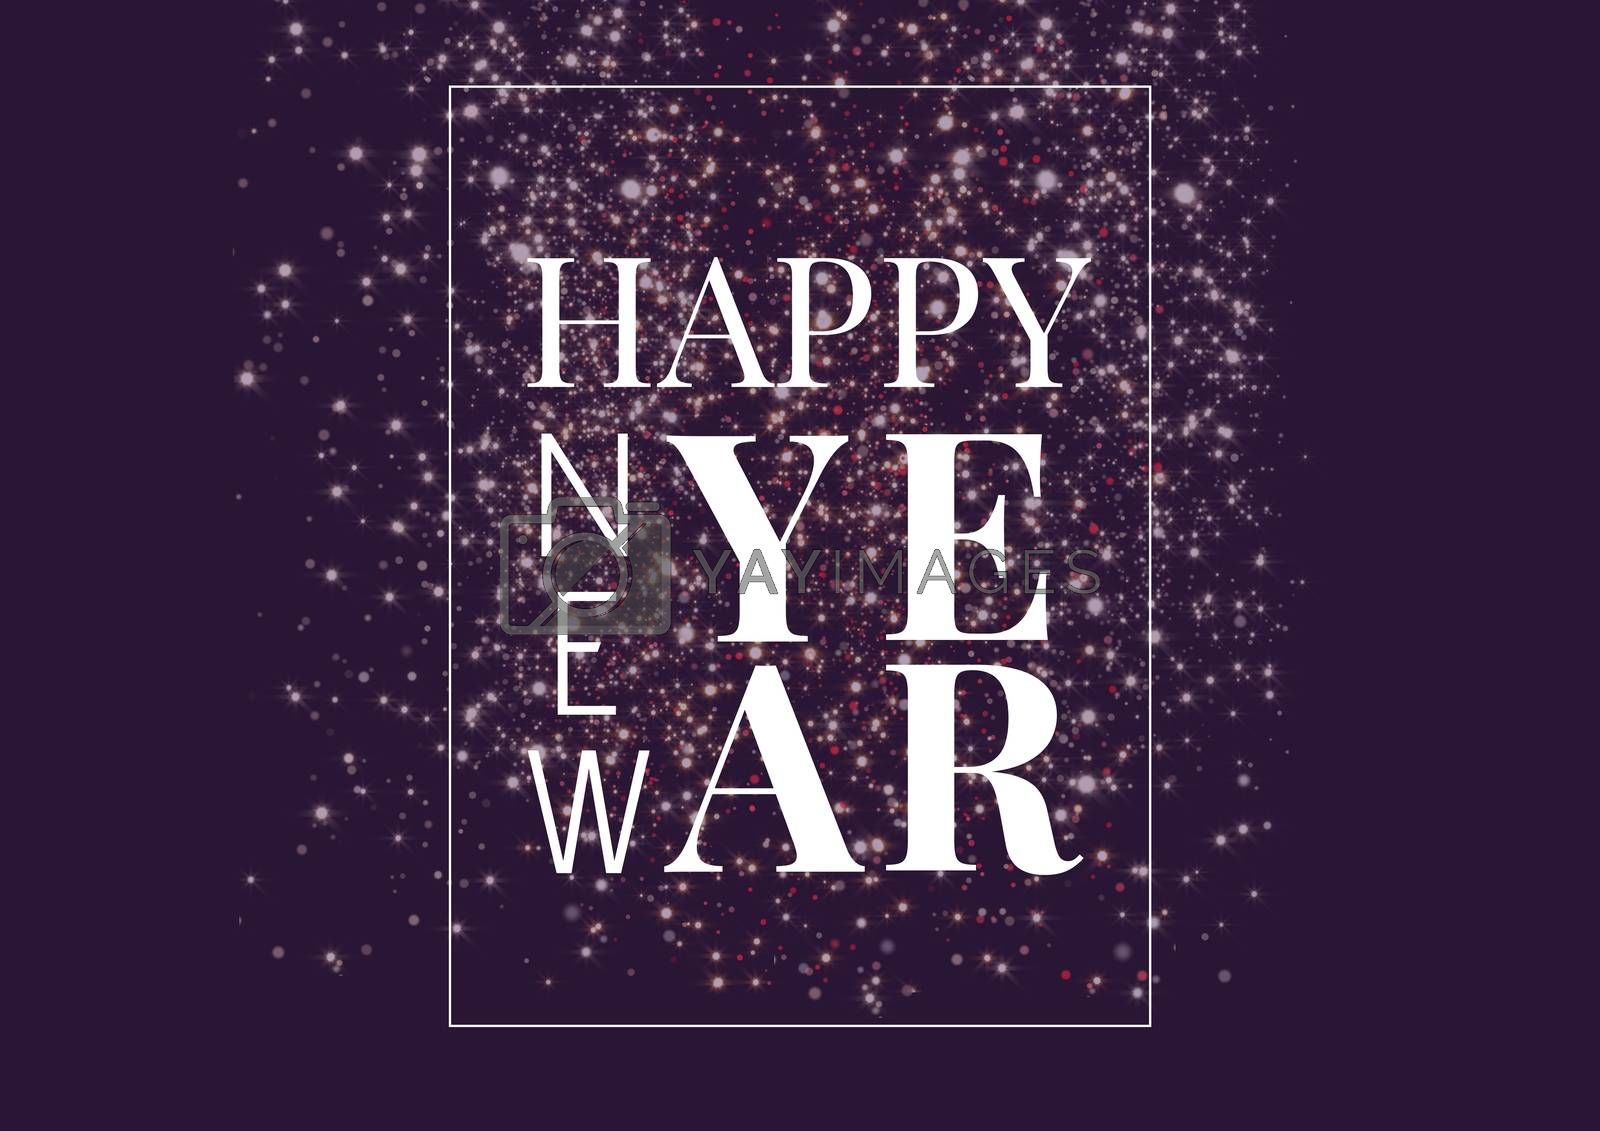 Digital composite of Happy New Year Framed textblock and glitter in the background